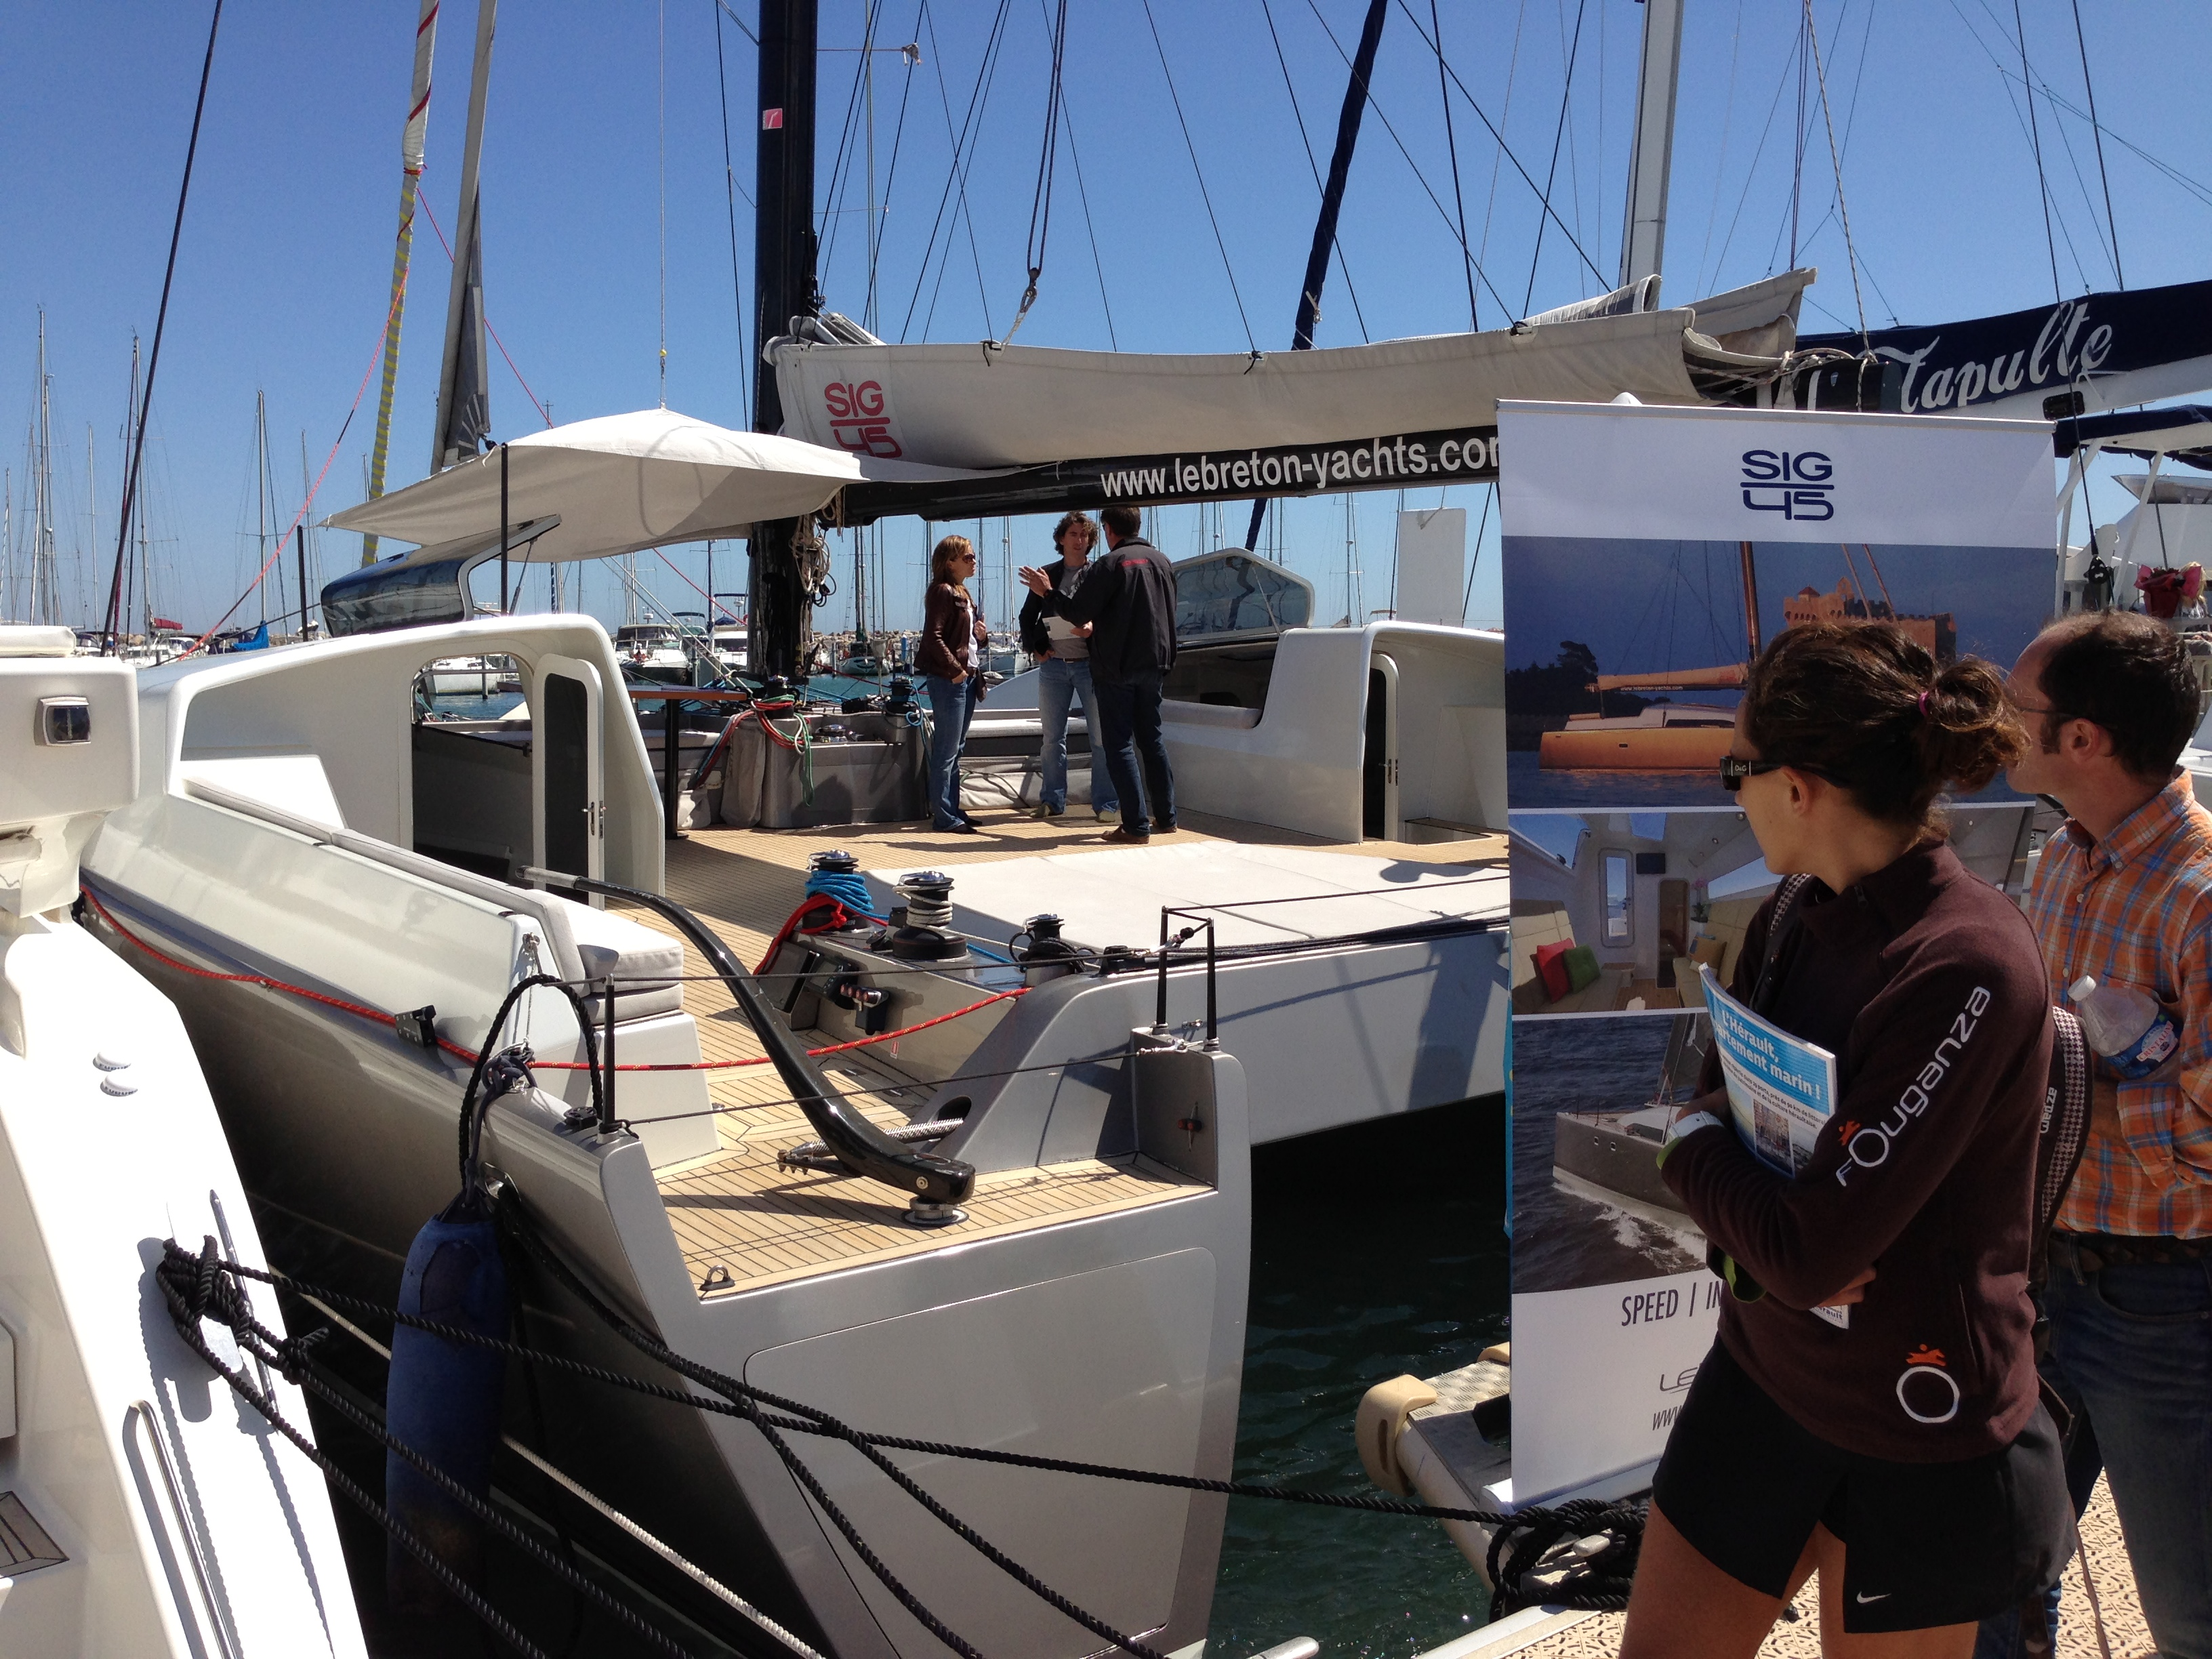 The Sig45 at the International Multihull Boatshow 2013